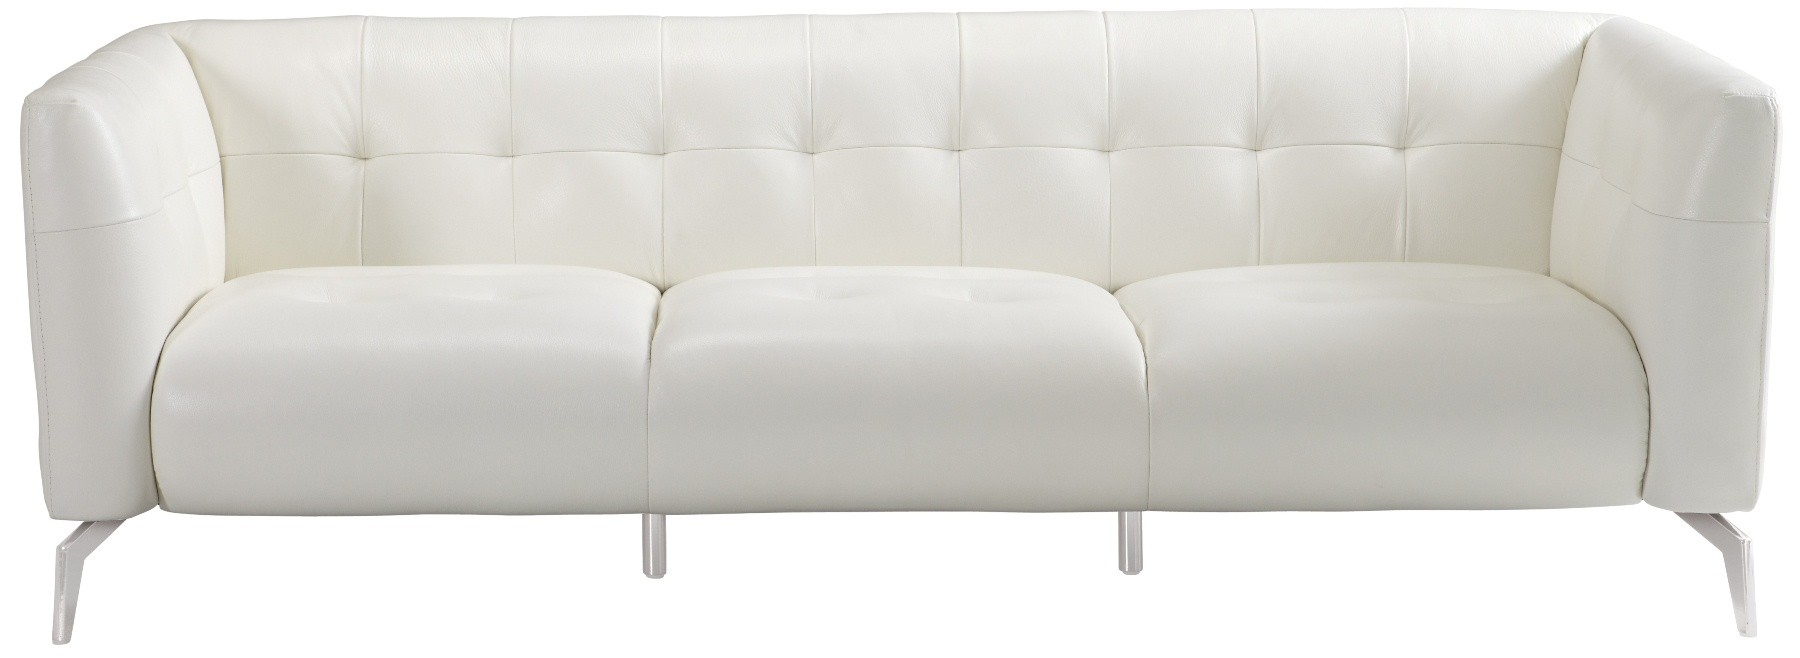 White Sofa White Couch Ultimate Reviews Thesofa